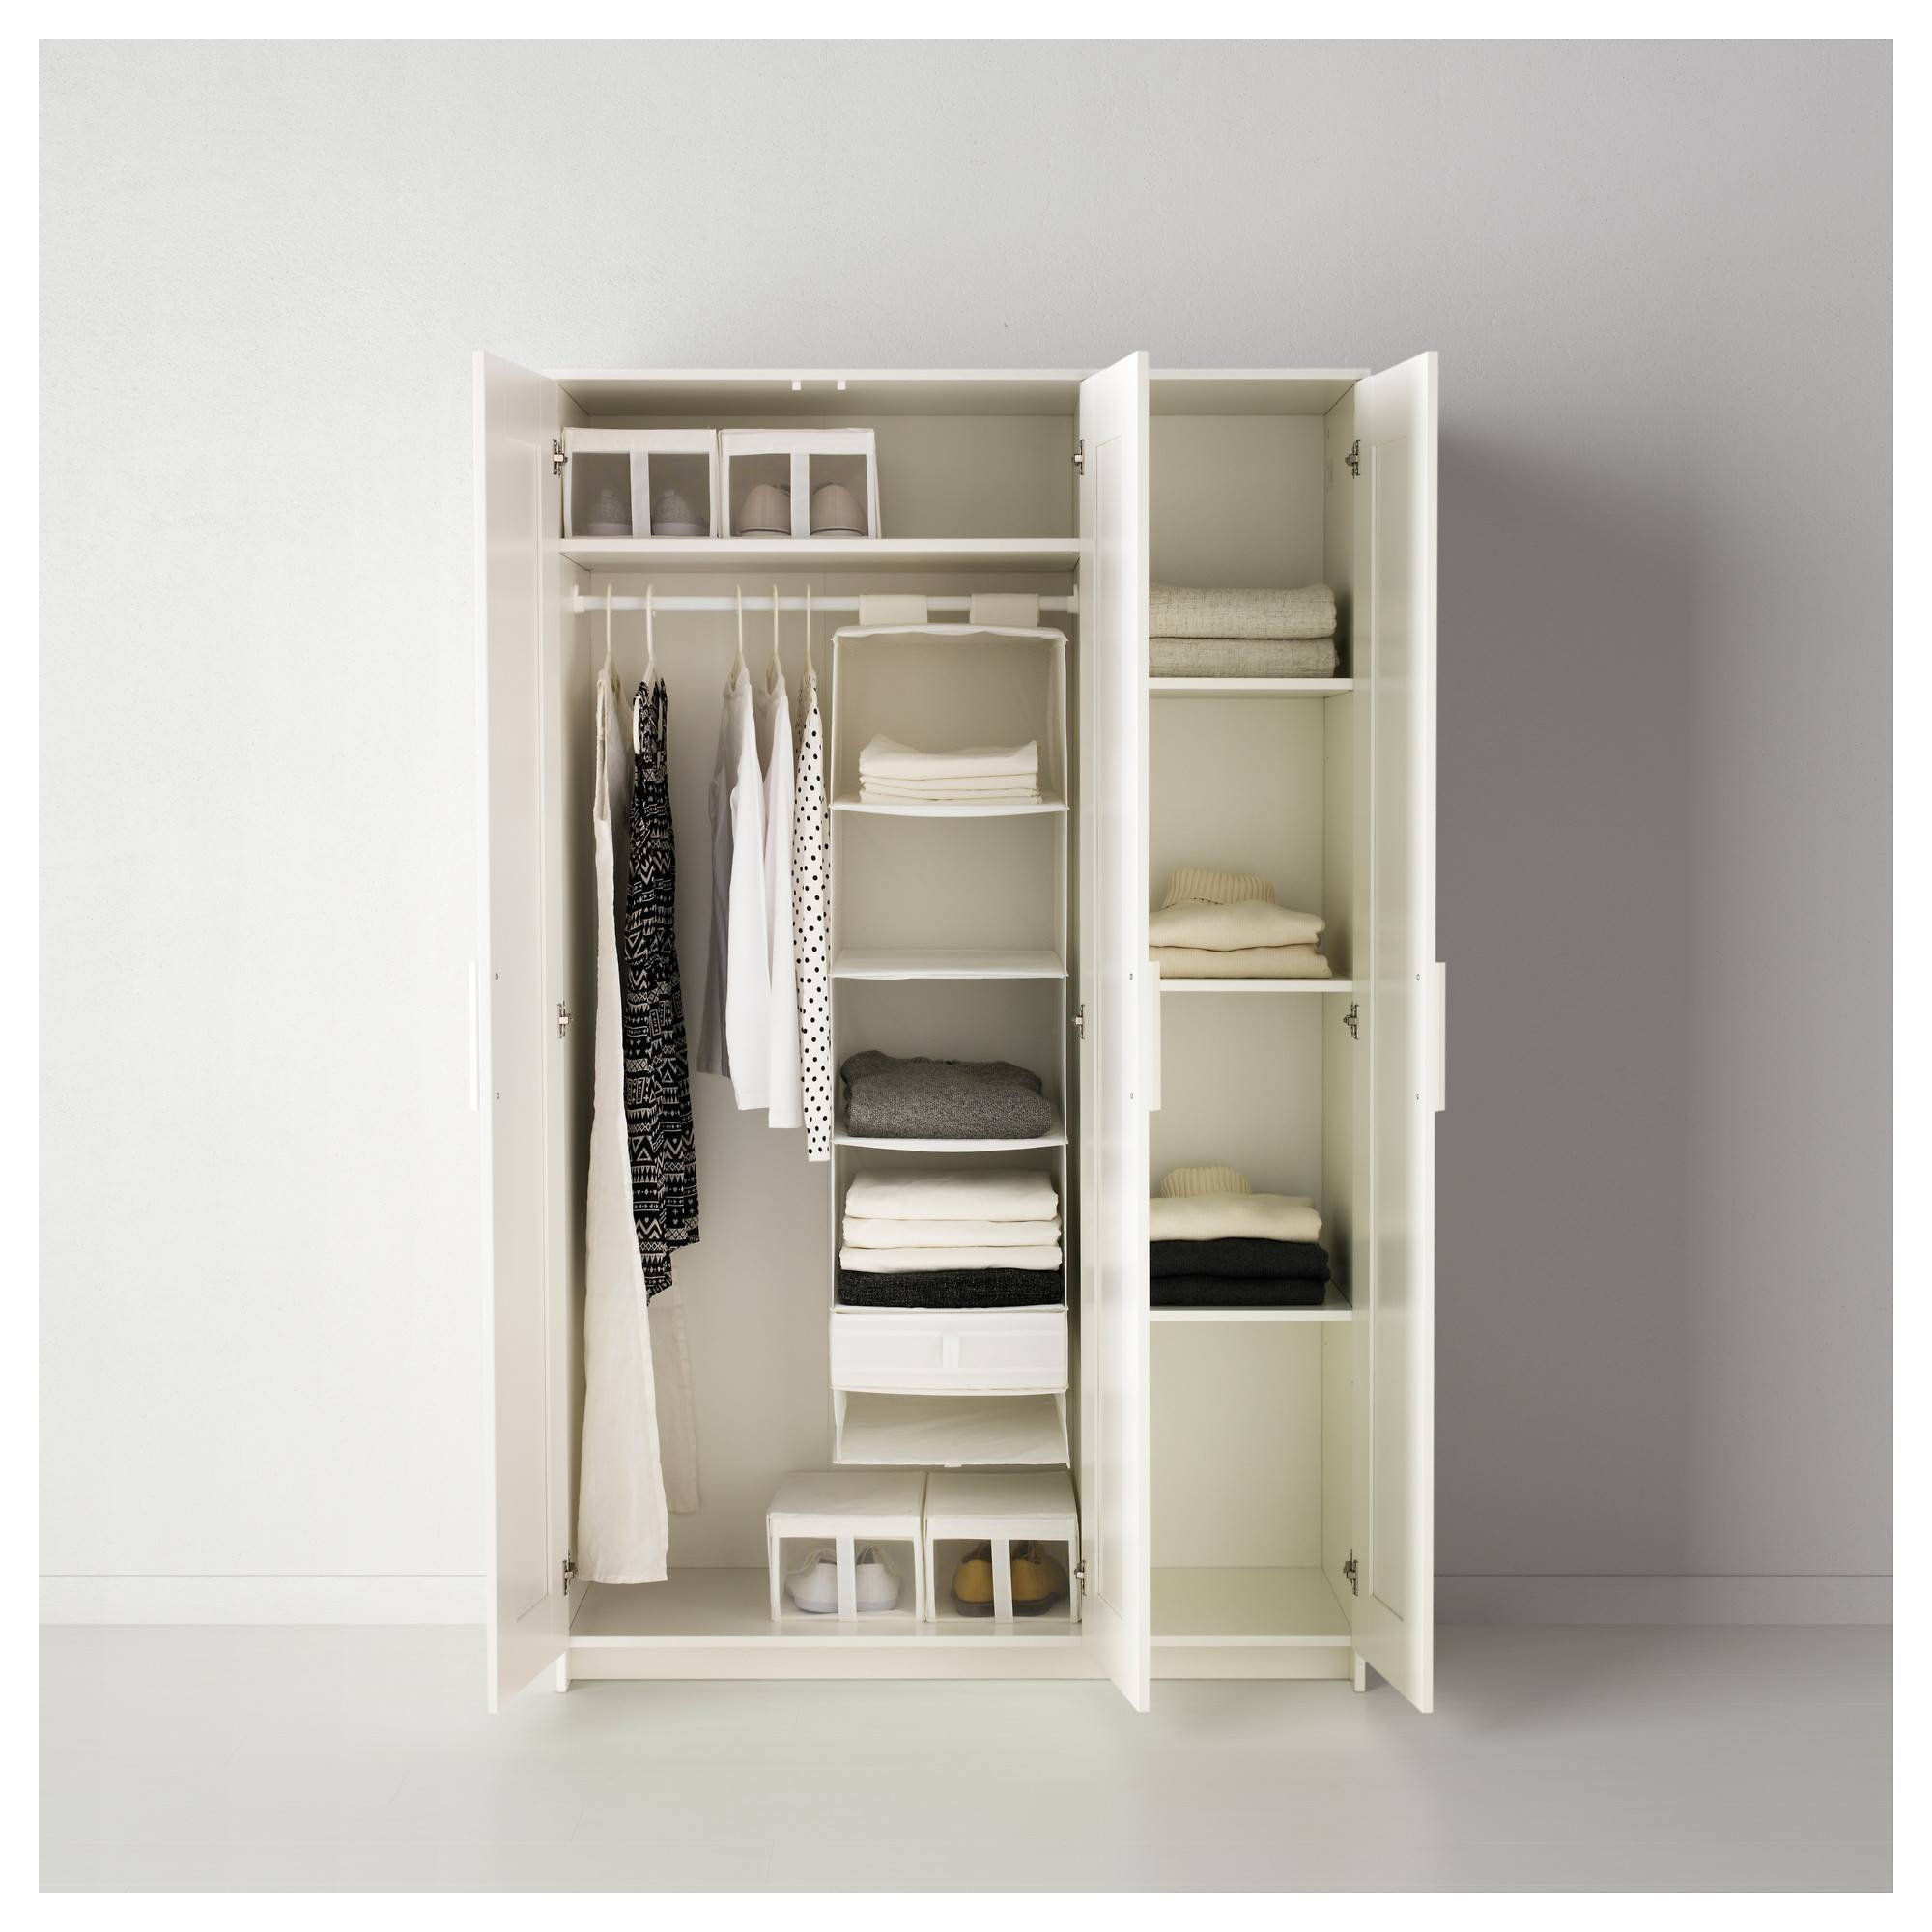 Brimnes Wardrobe With 3 Doors - White - Ikea intended for White 3 Door Wardrobes With Mirror (Image 2 of 15)